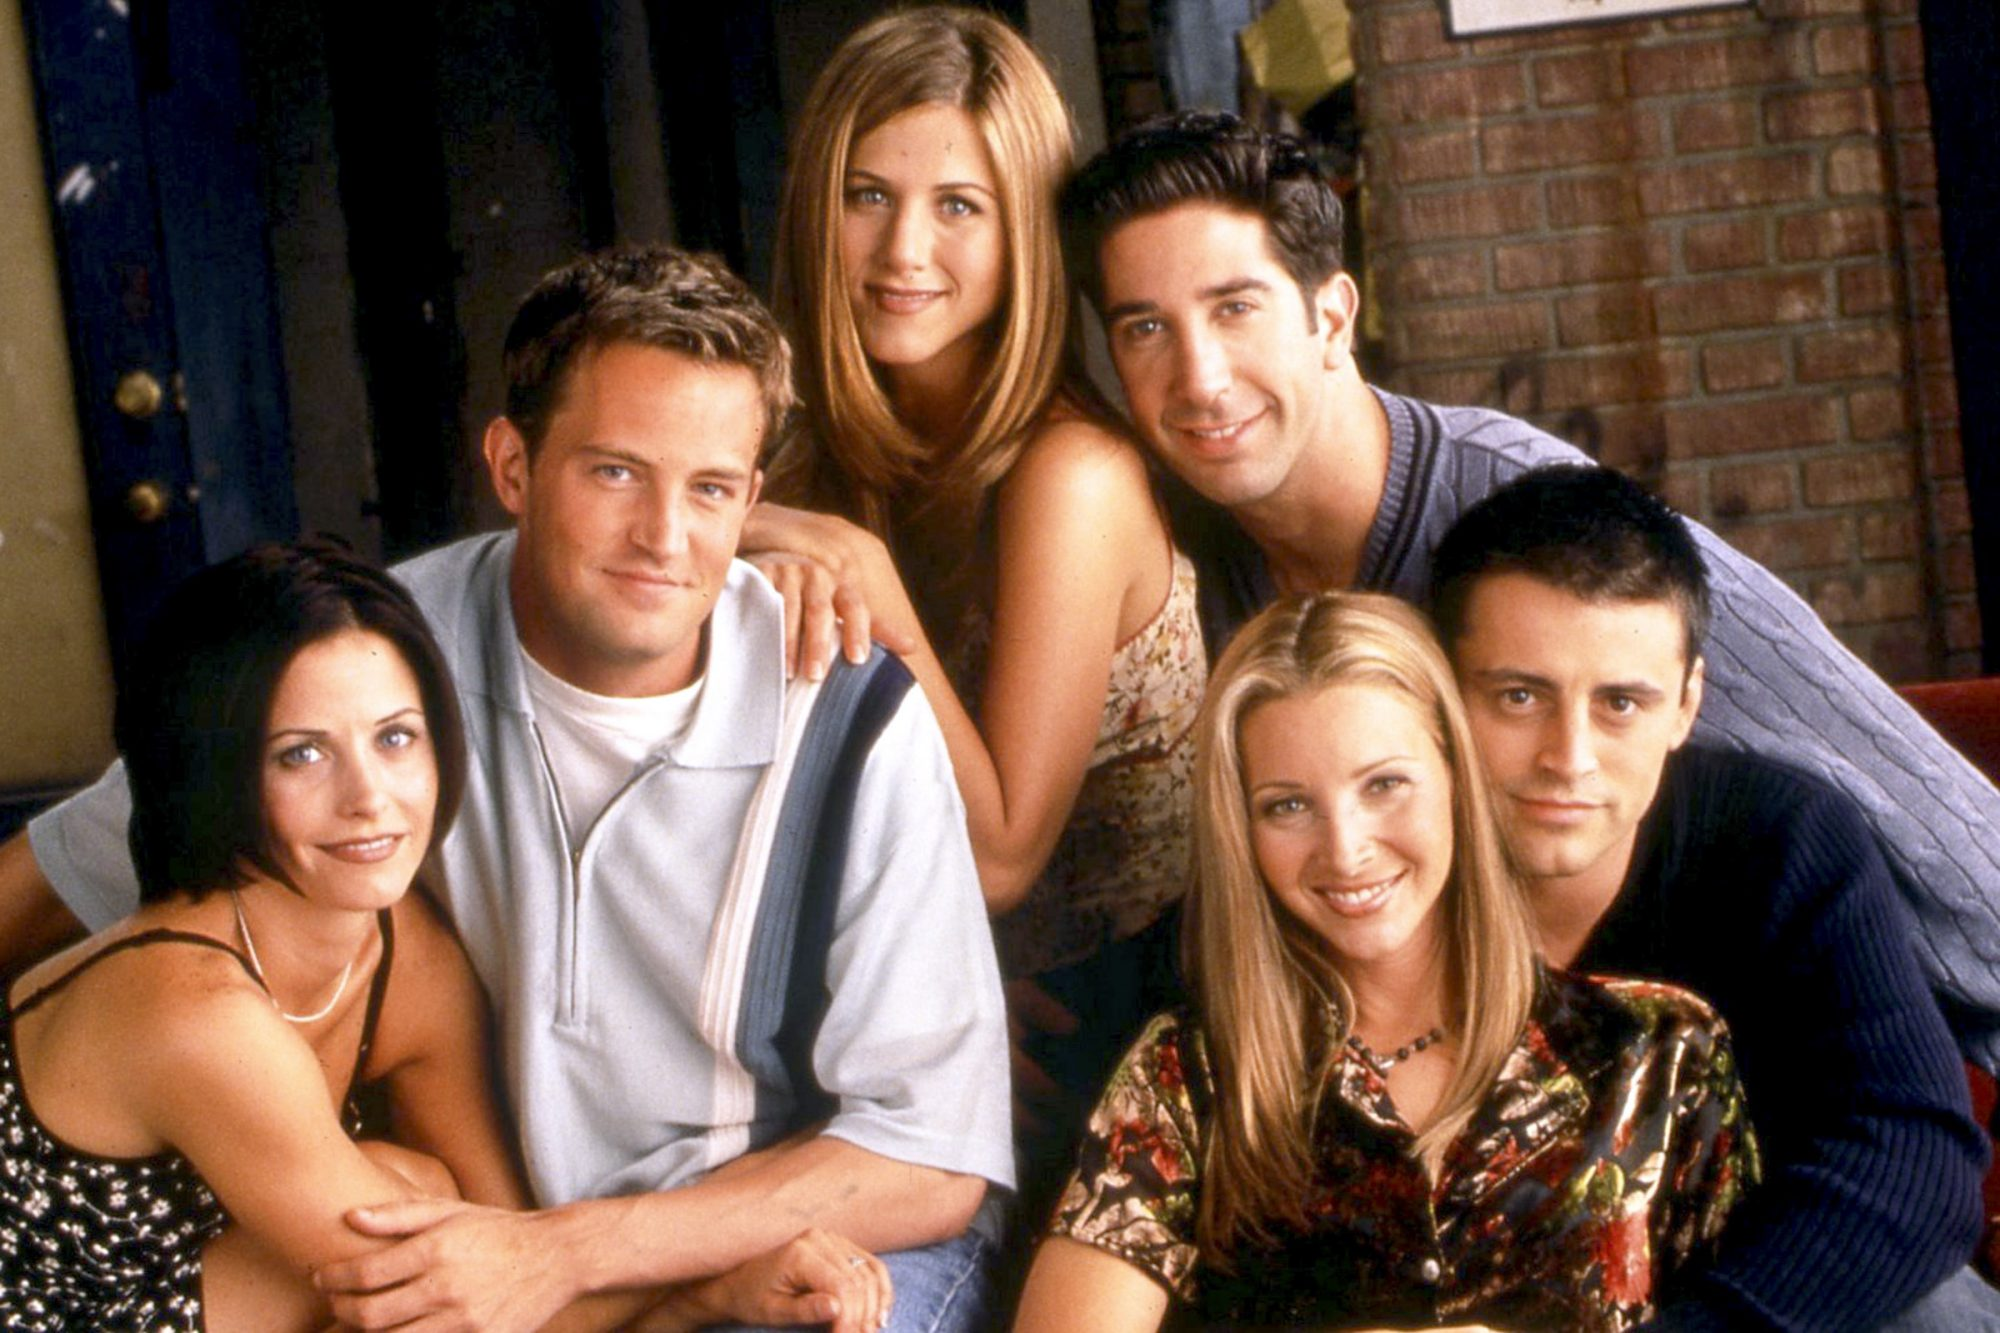 'Friends' Reunion Is Happening! Here's What We Know